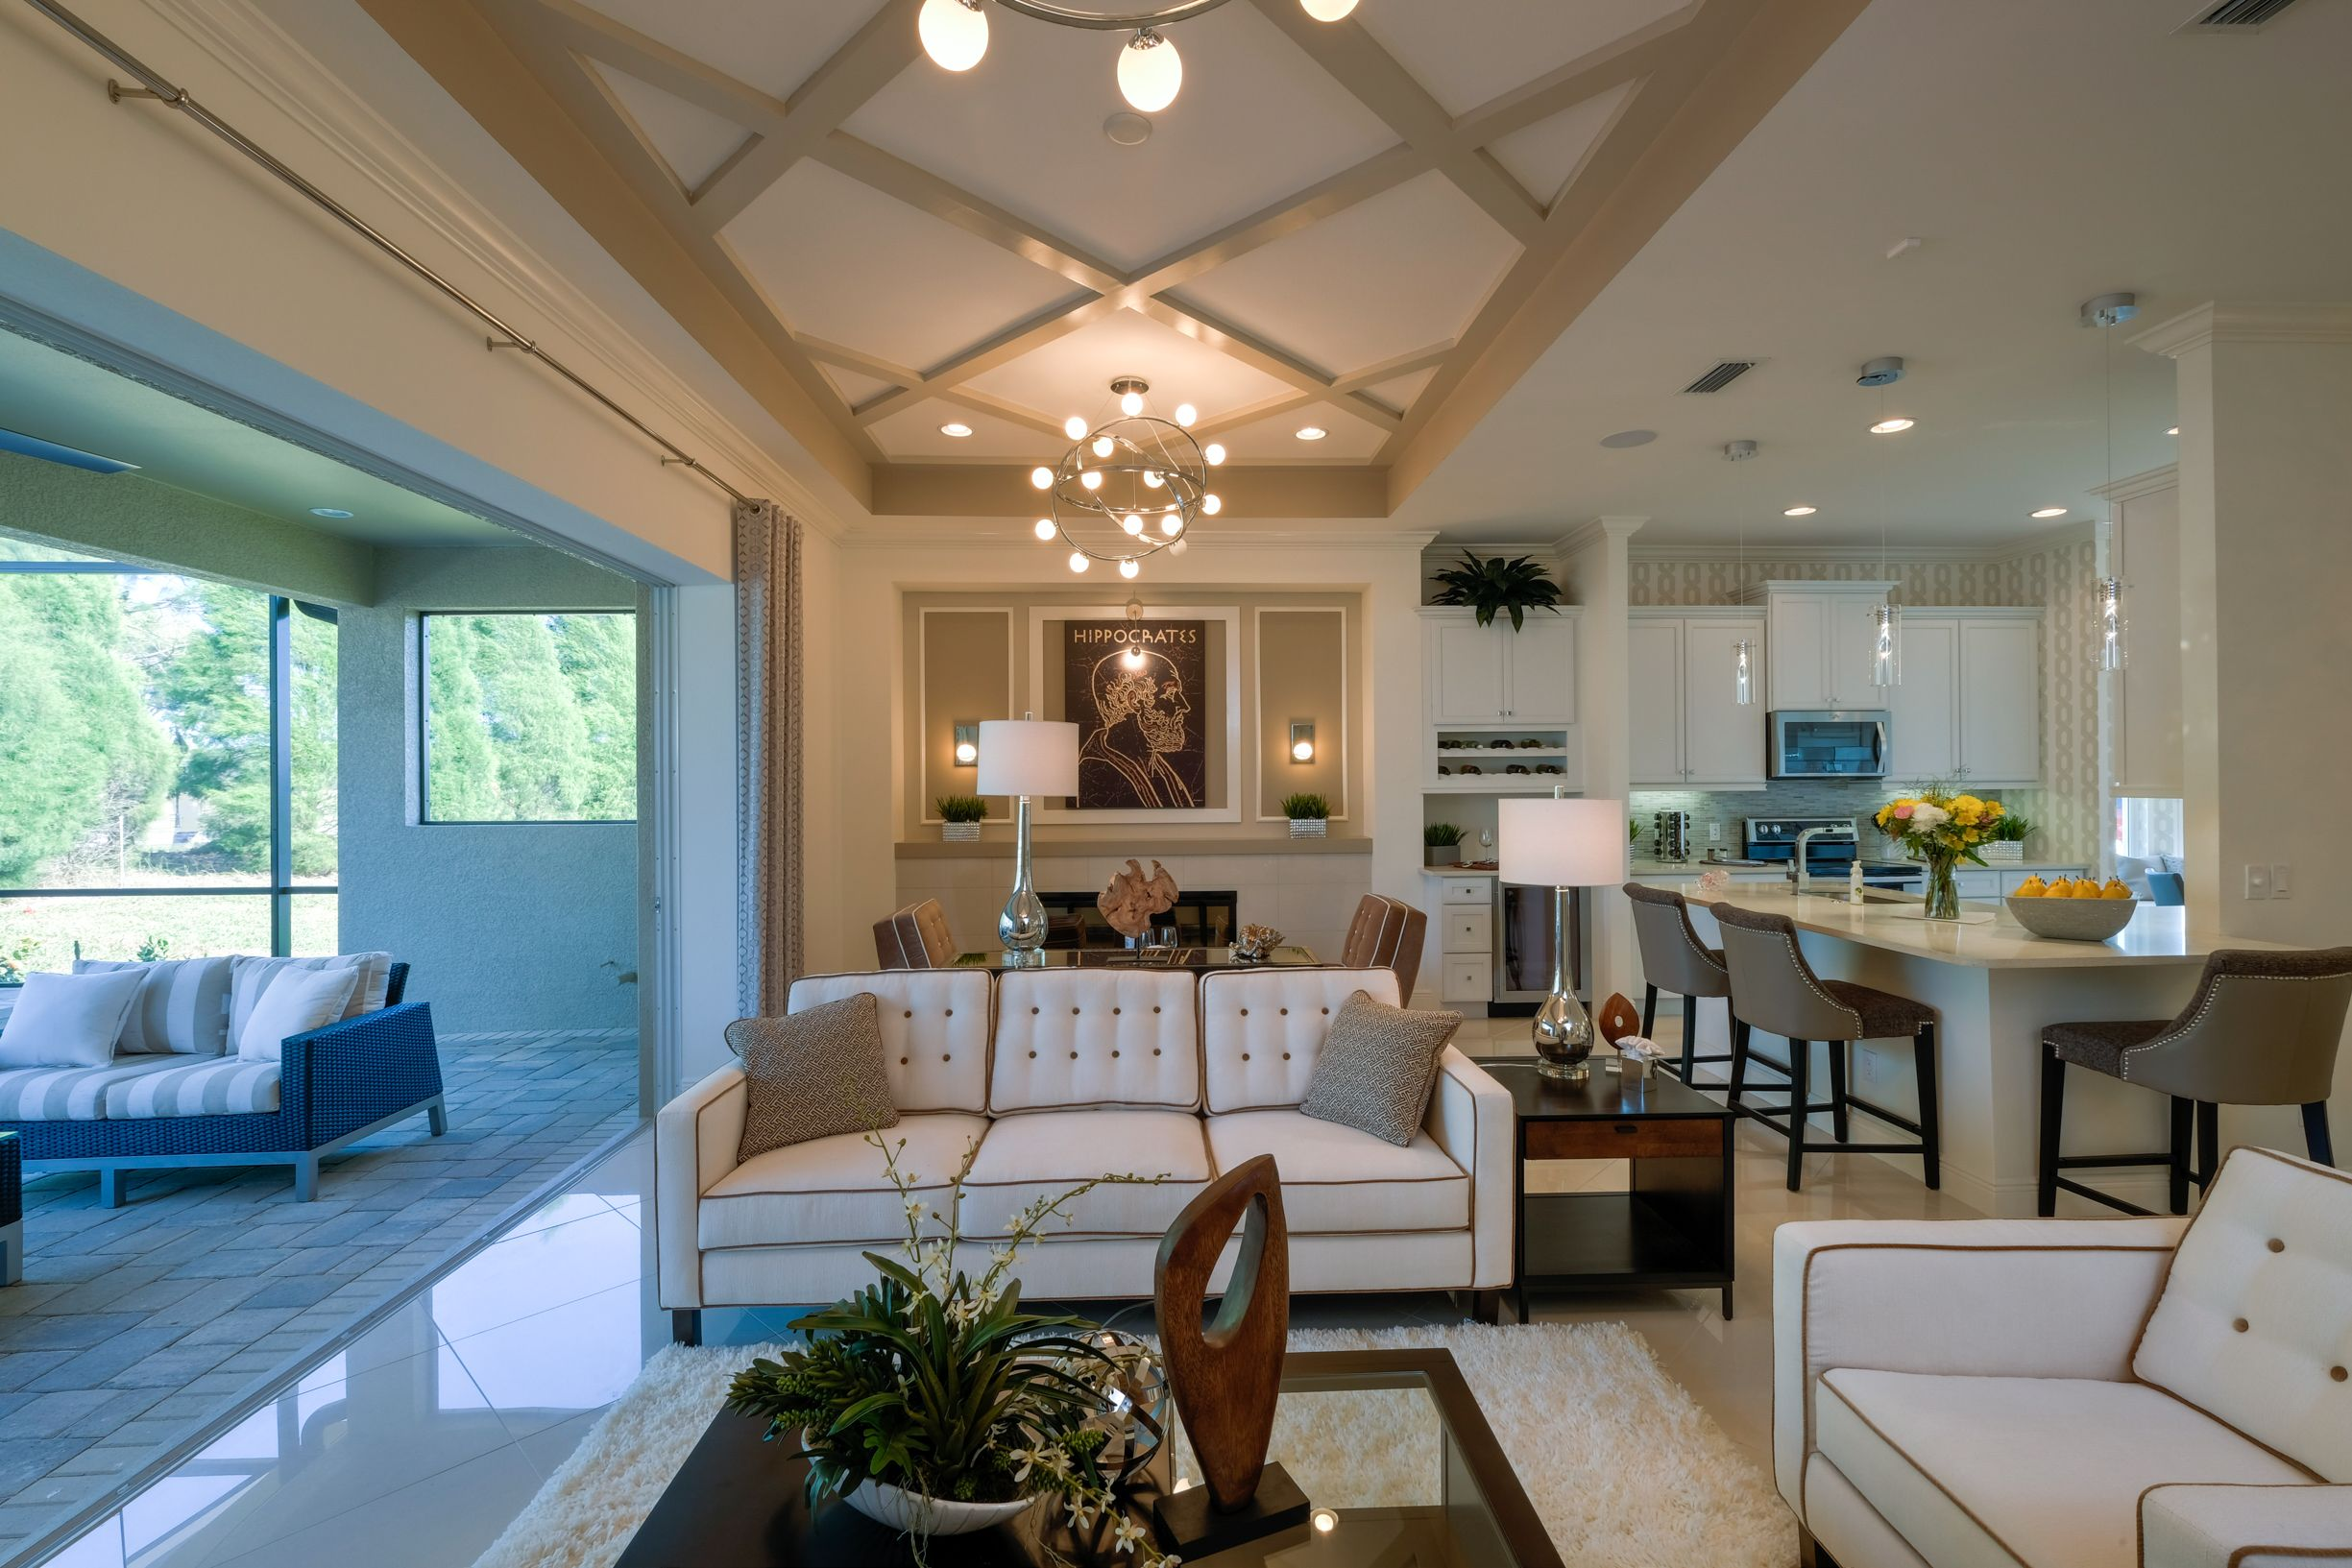 Living Area featured in the Grenada By Medallion Home in Sarasota-Bradenton, FL